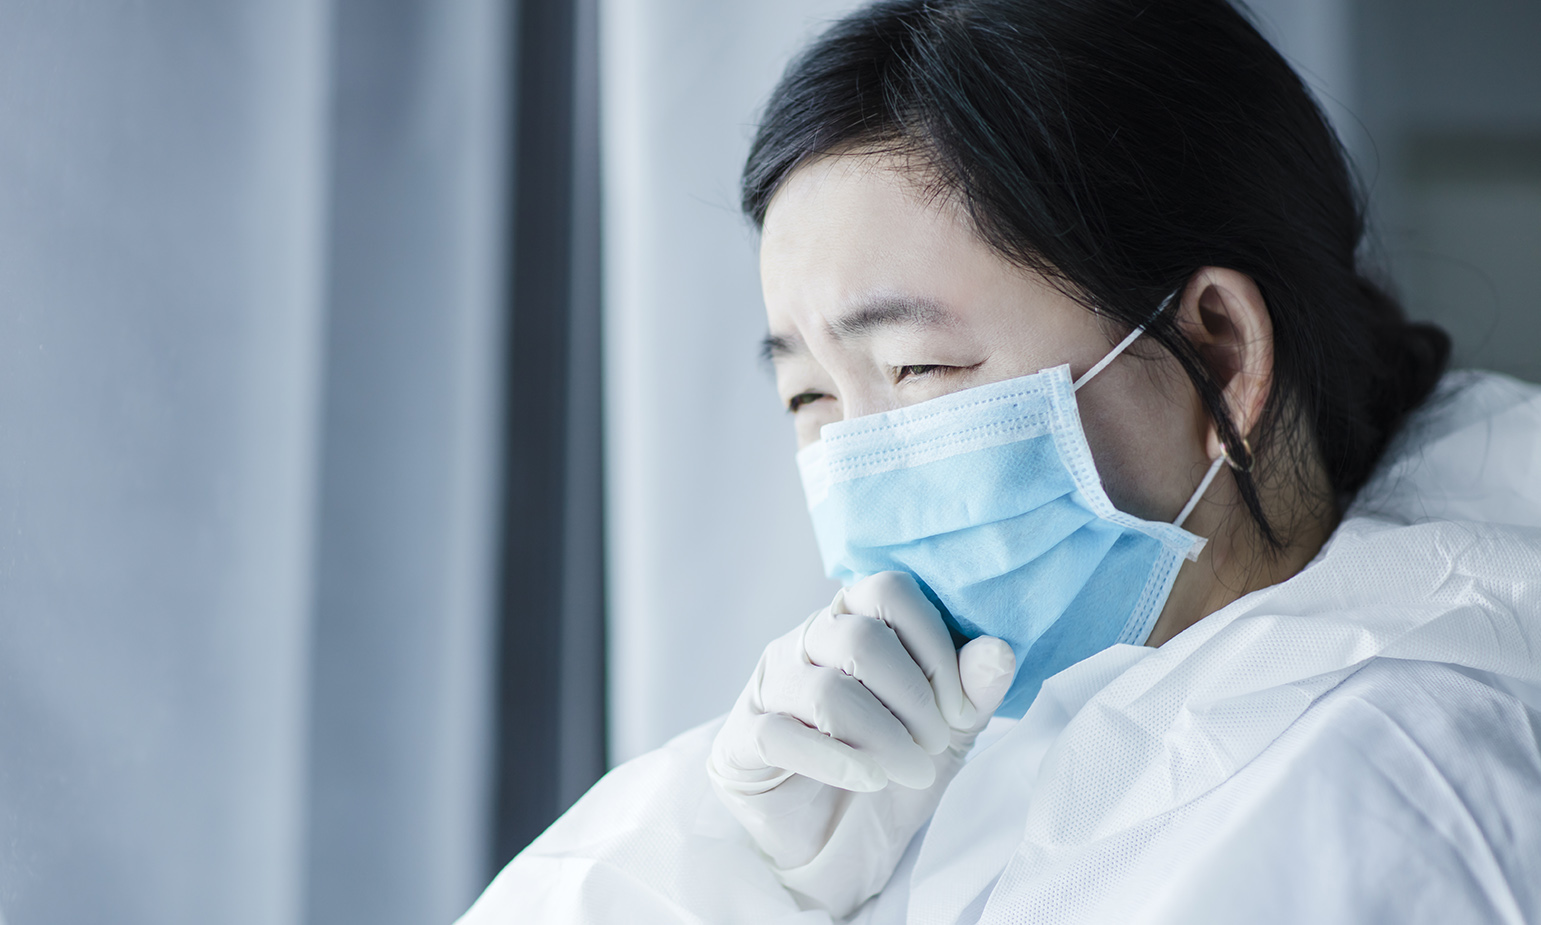 Primary Care Physicians Experience More Burnout and Anxiety Than Other Health Professions